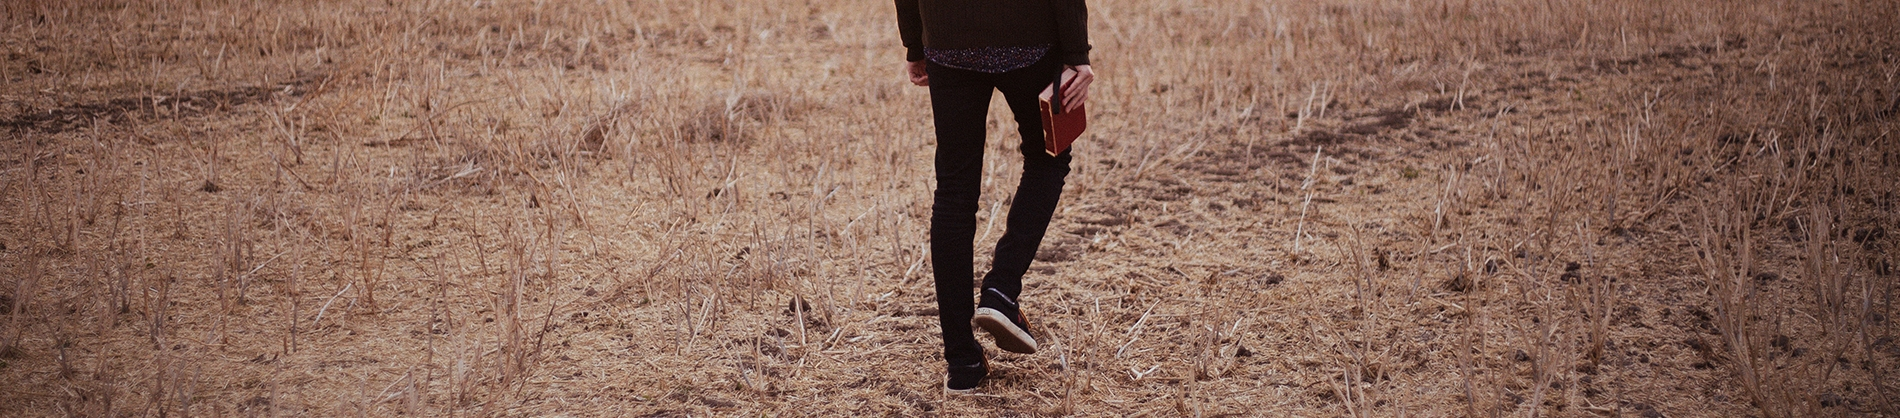 A man walking through a dry field carrying his bible